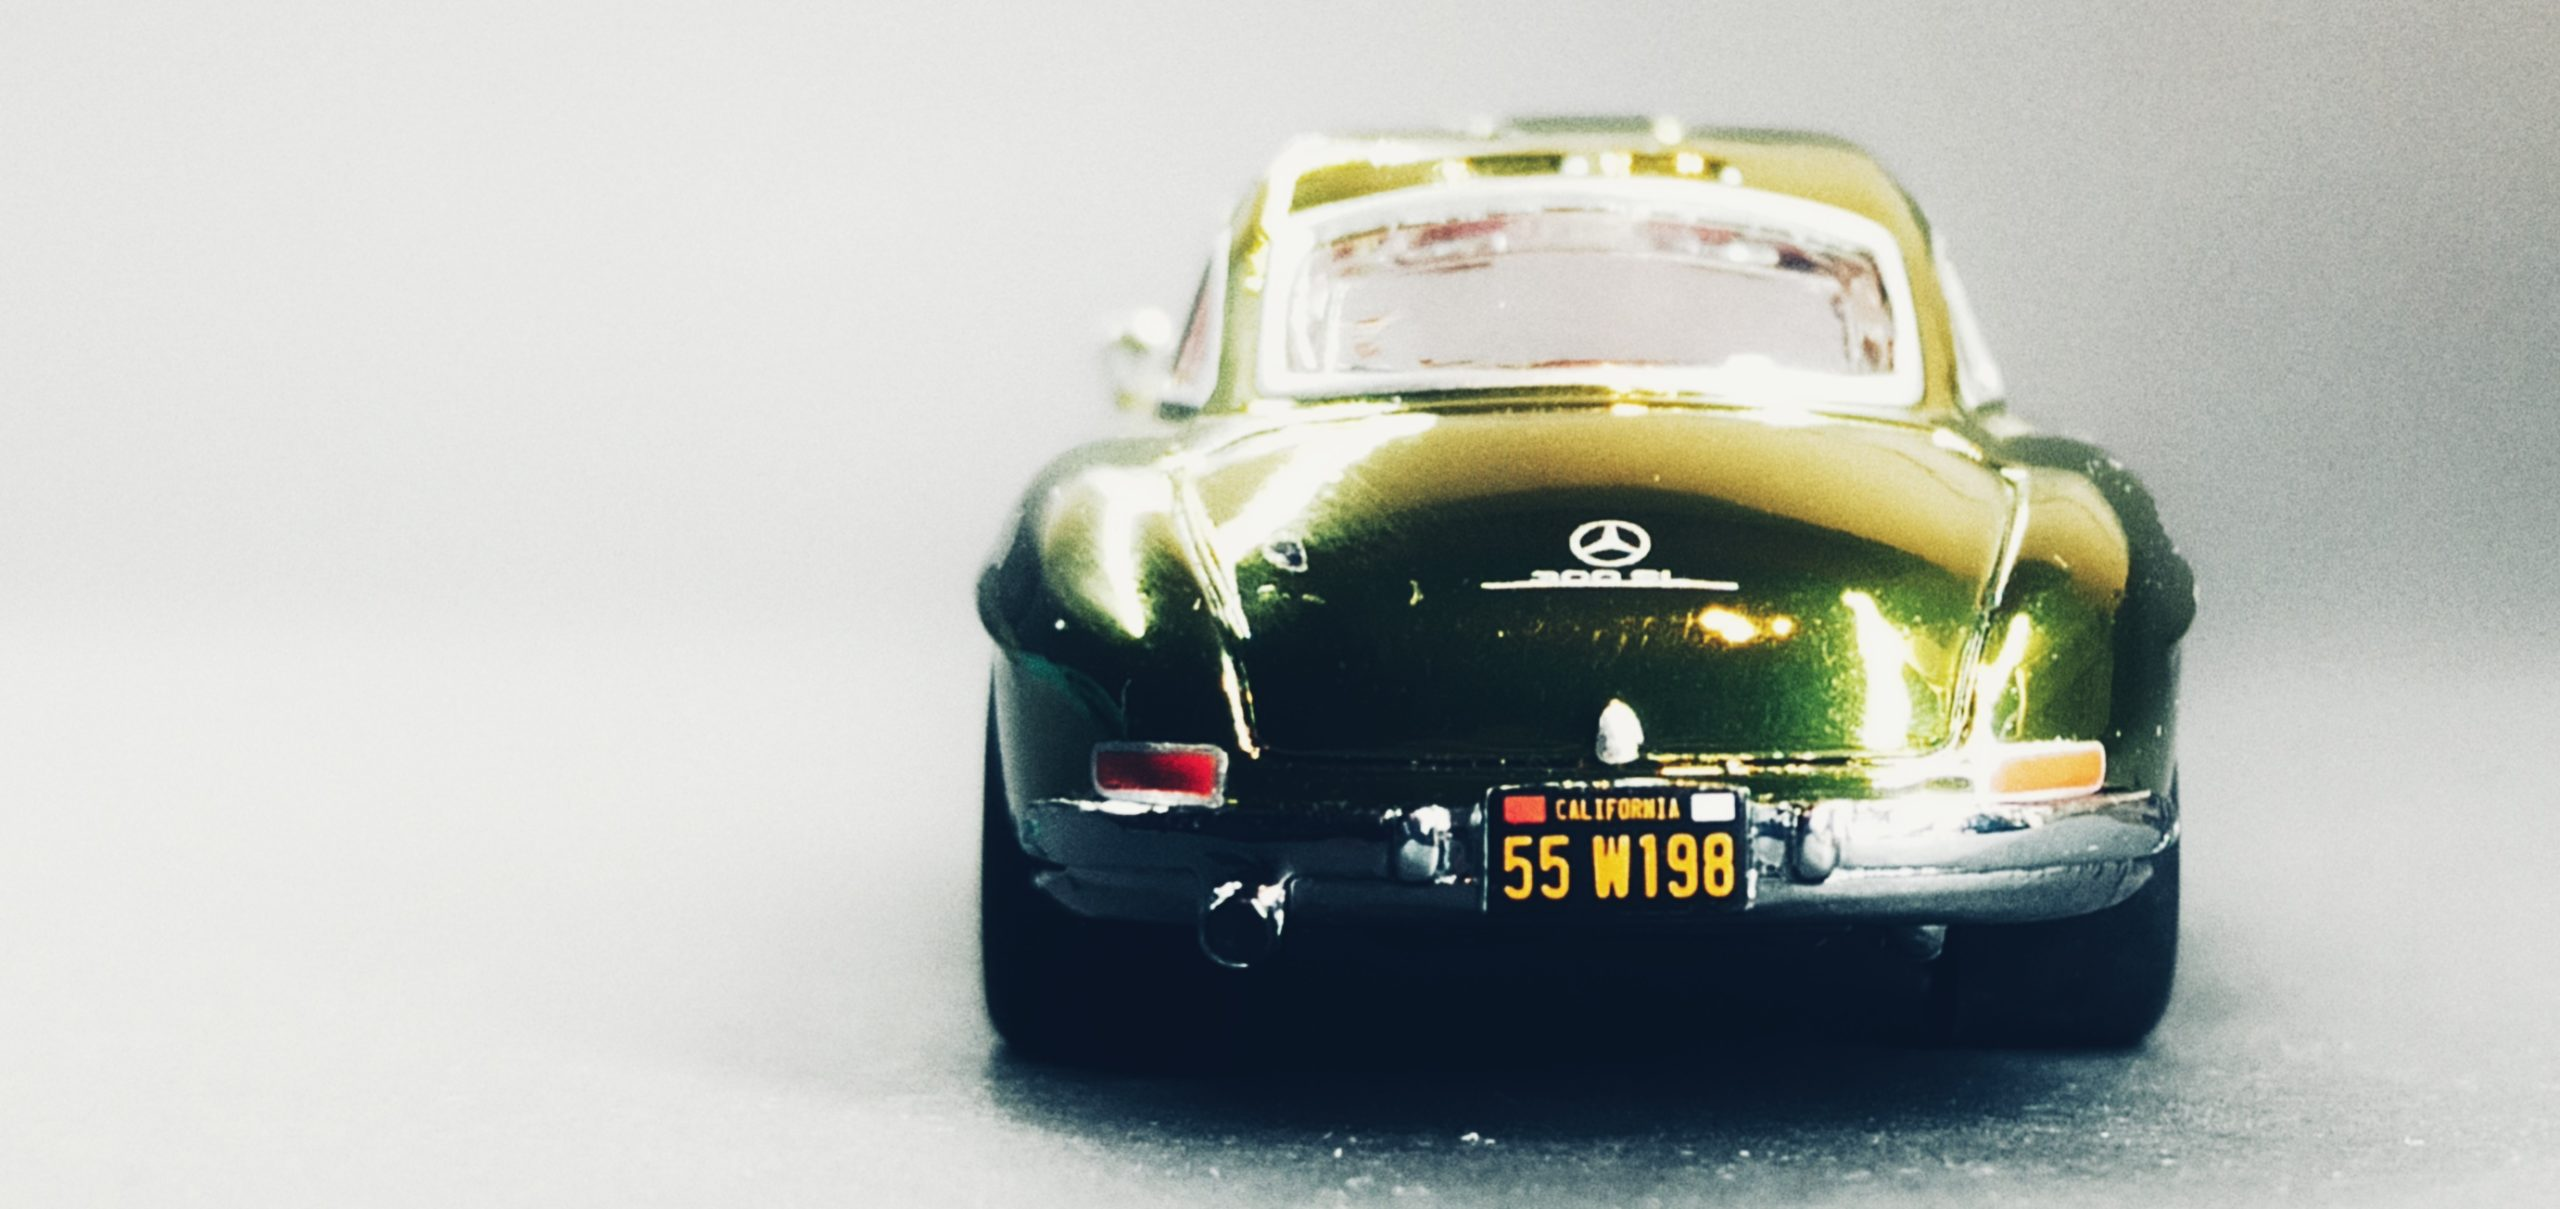 Hot Wheels '55 Mercedes-Benz 300 SL (GDF83) 2019 RLC Exclusive (1 of 12.500) spectraflame green back